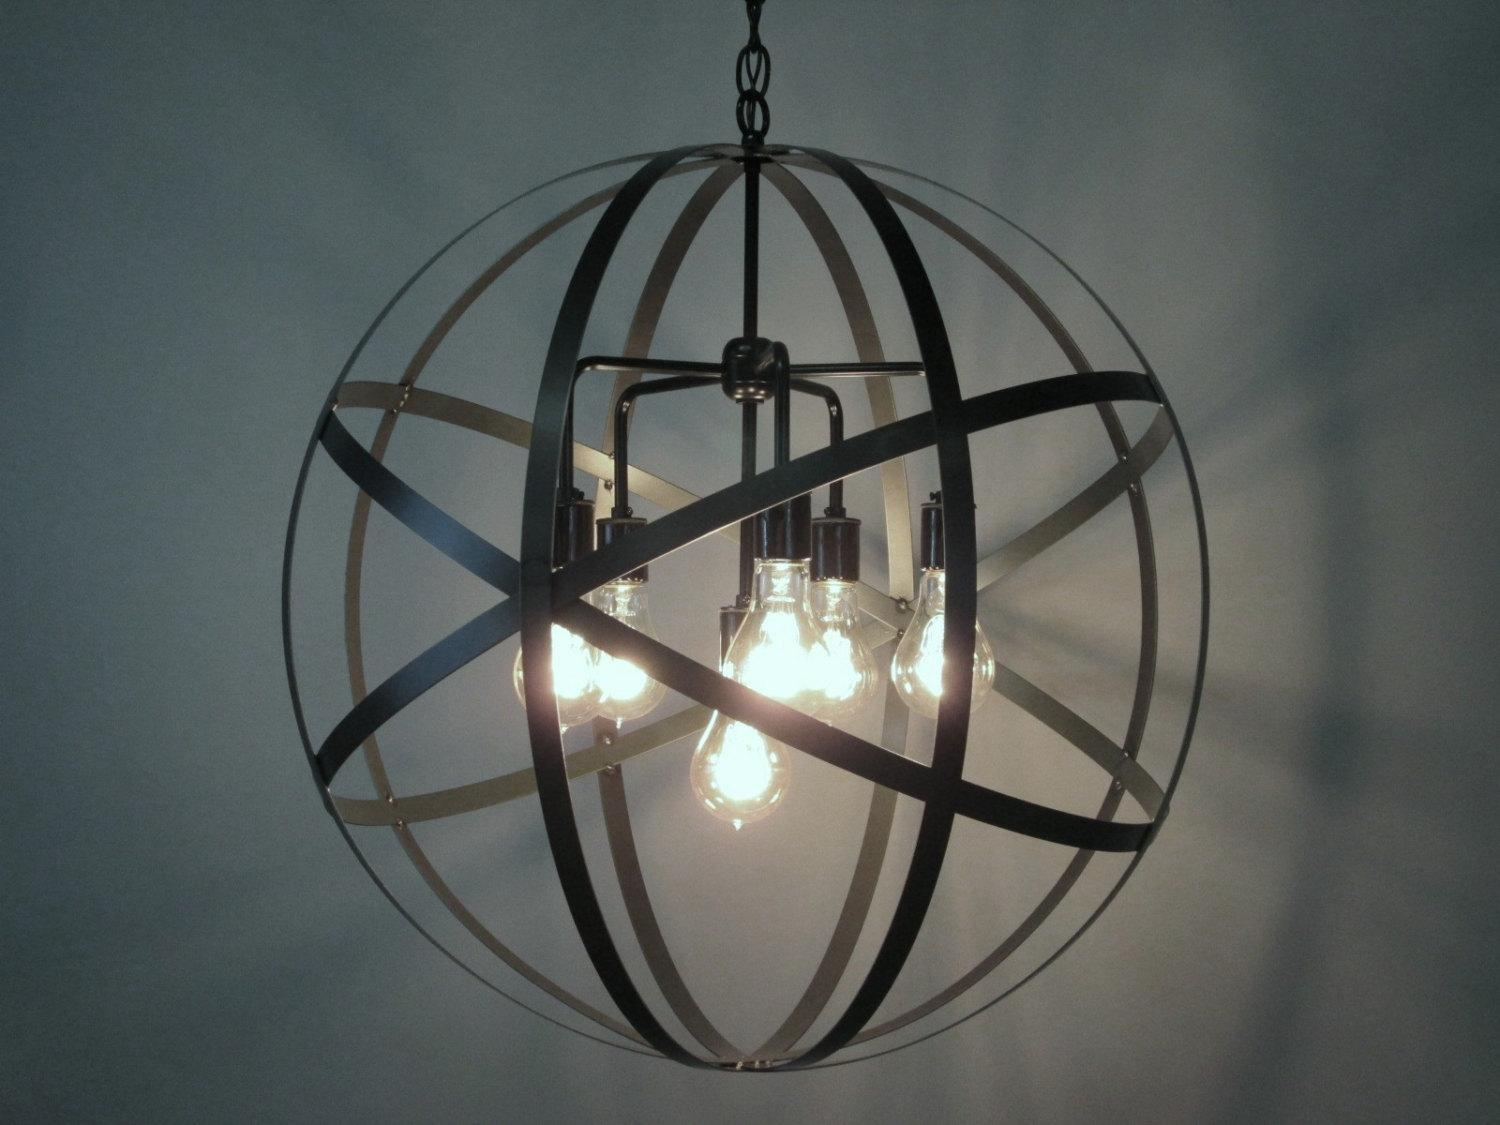 Lighting: Large Metal Orb Chandelier For Dining Rooms Chandeliers With Metal Chandelier Wall Art (Image 10 of 20)